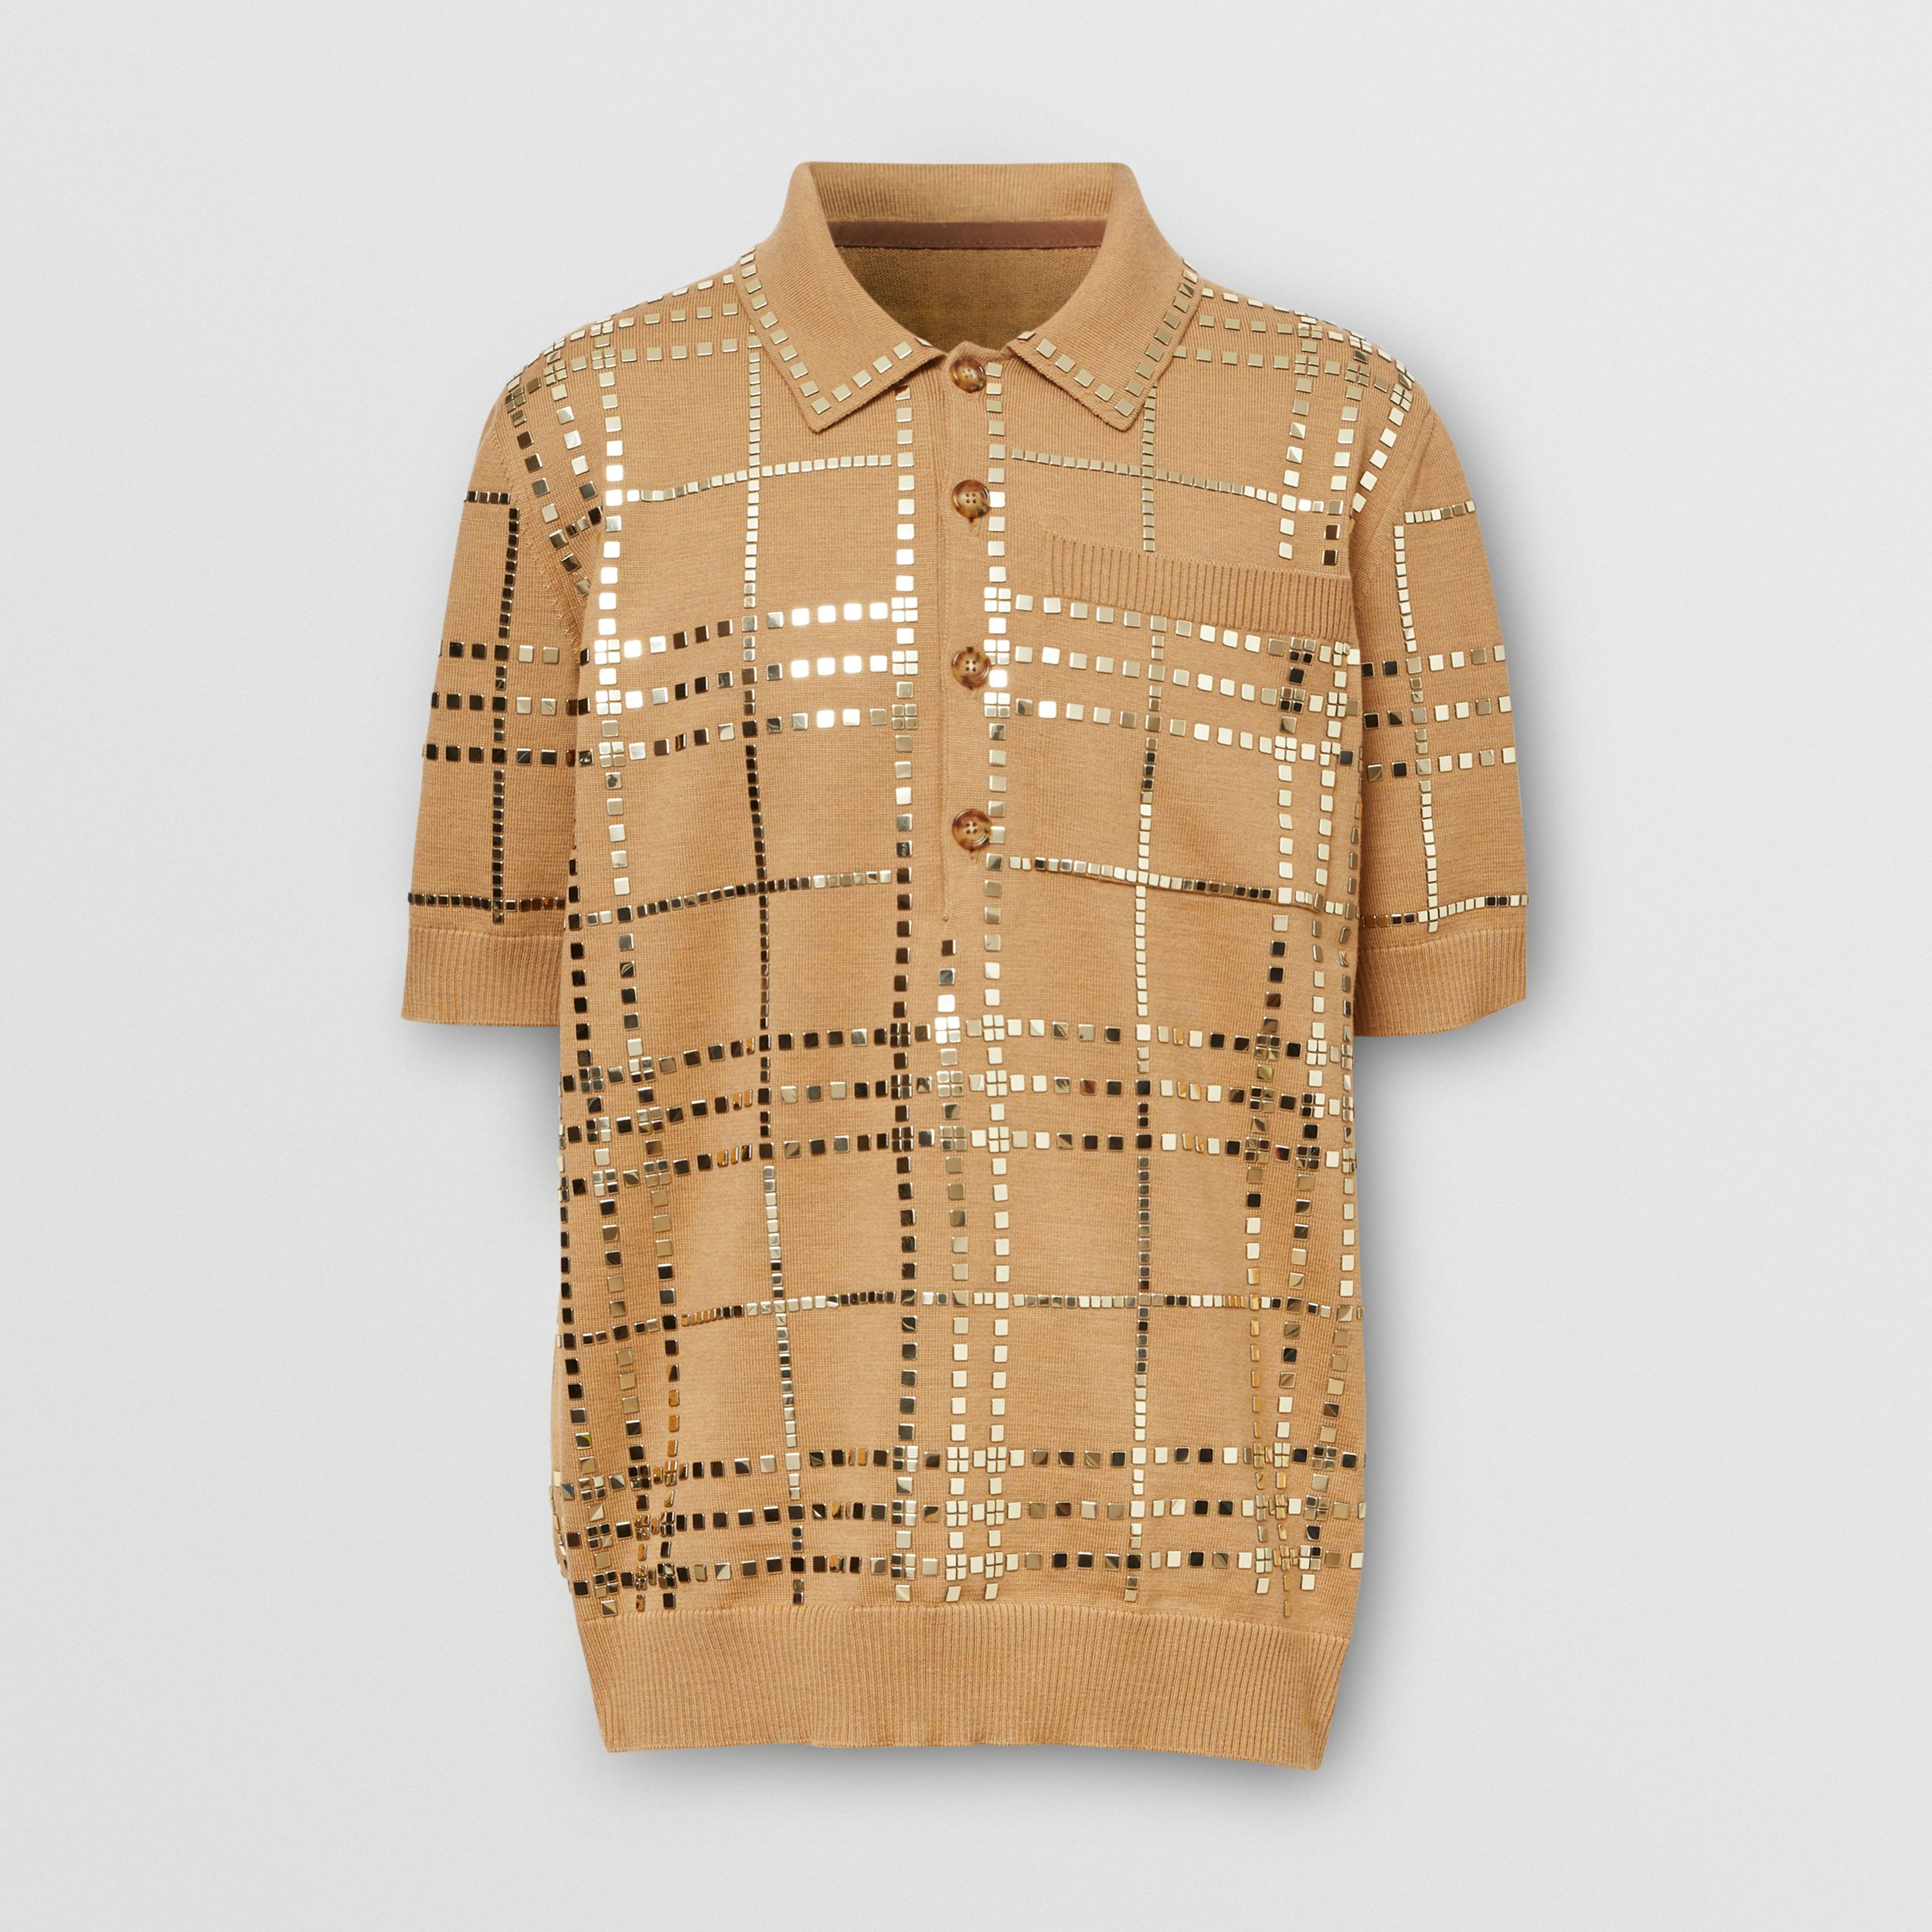 Mirrored Check Wool Jersey Polo Shirt in Camel | Burberry - 4